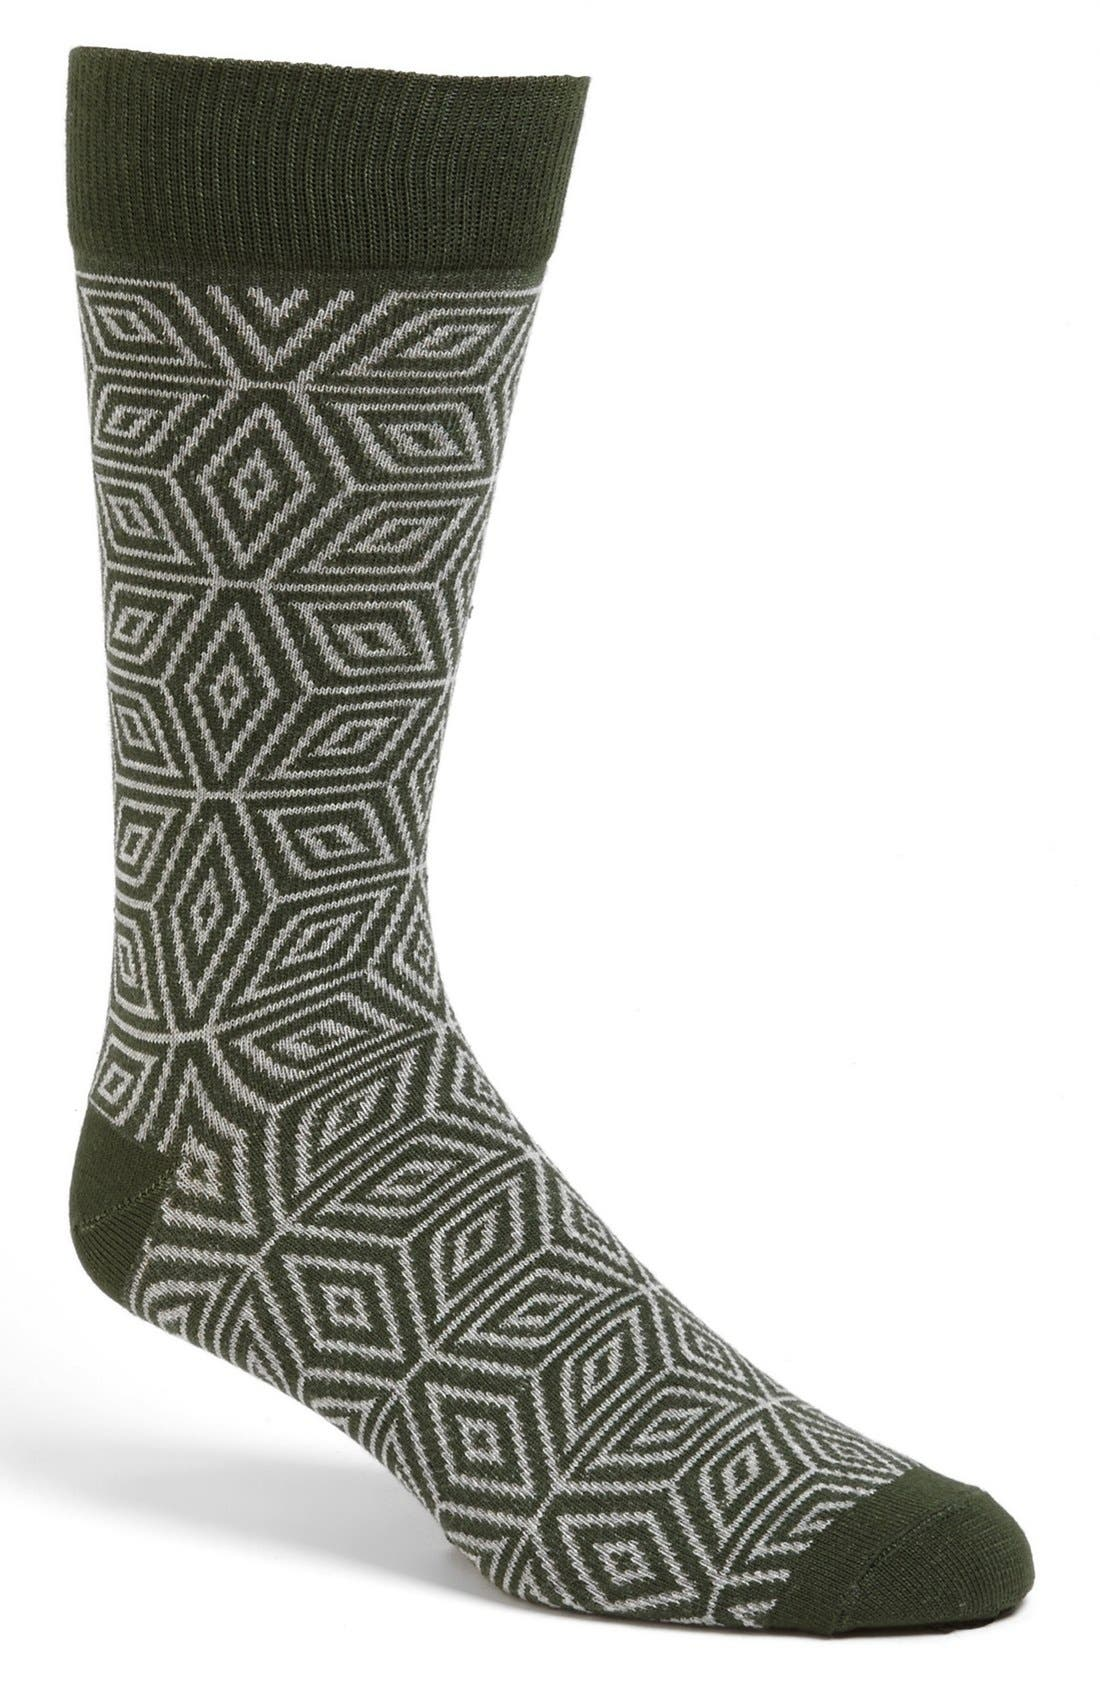 Alternate Image 1 Selected - Pact 'North Star' Socks